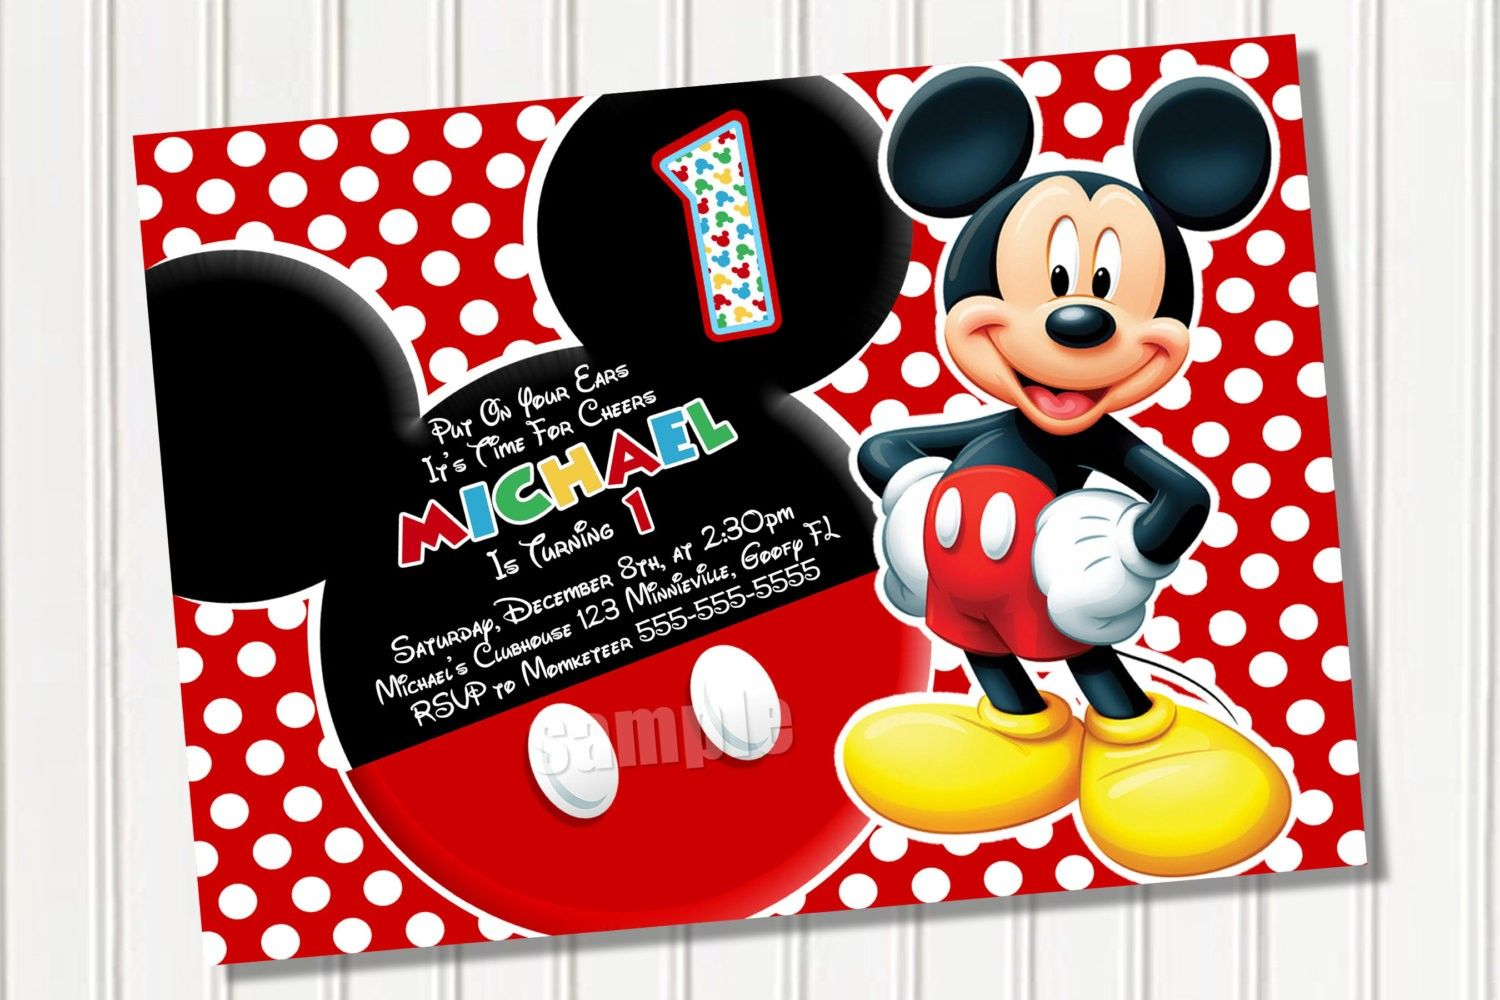 image about Free Printable Mickey Mouse 1st Birthday Invitations titled Free of charge Printable Mickey Mouse 1st Birthday Get together Invites